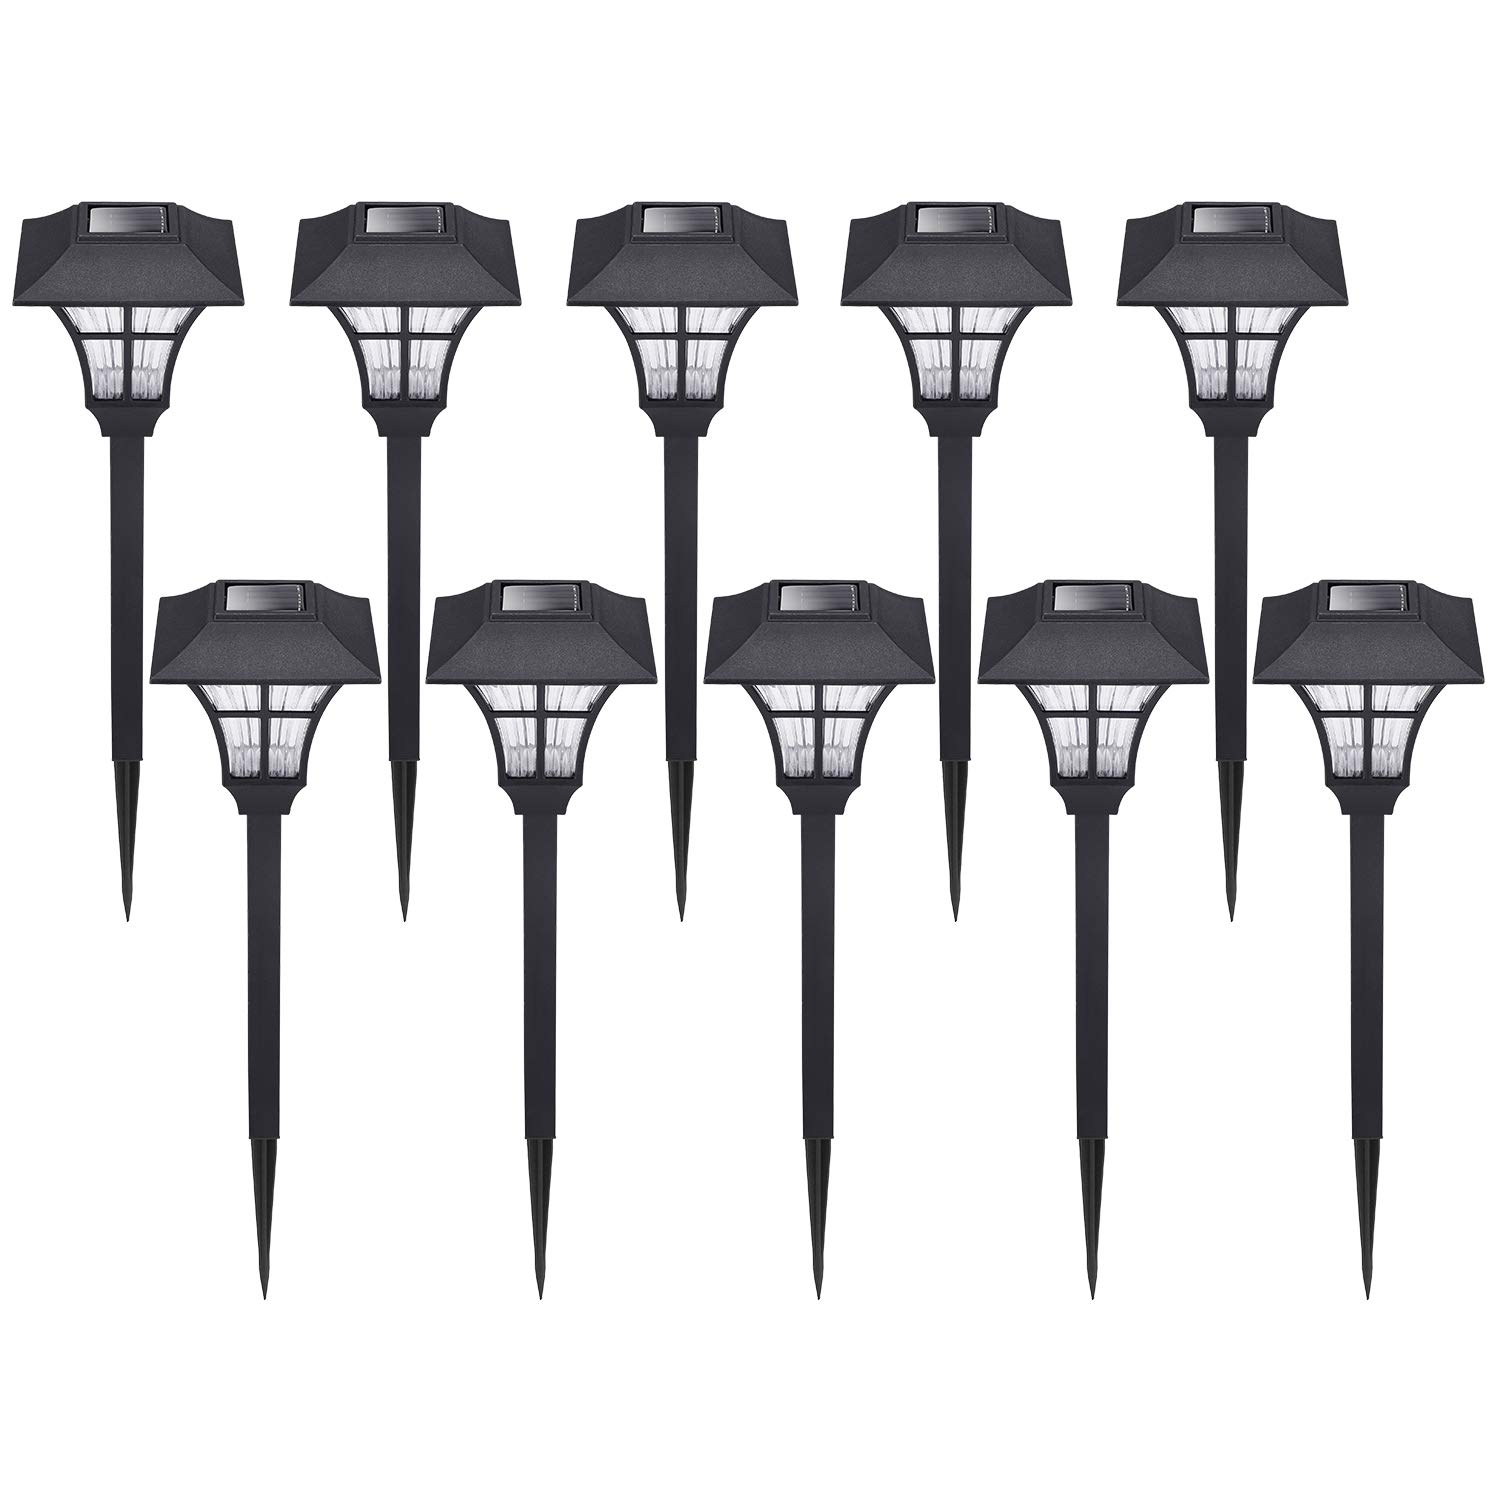 HECARIM Solar Lights Outdoor, 10 Pack Solar Pathway Lights, Solar Powered Garden Lights, Waterproof LED Solar Landscape Lights for Walkway, Pathway, Lawn, Yard and Driveway